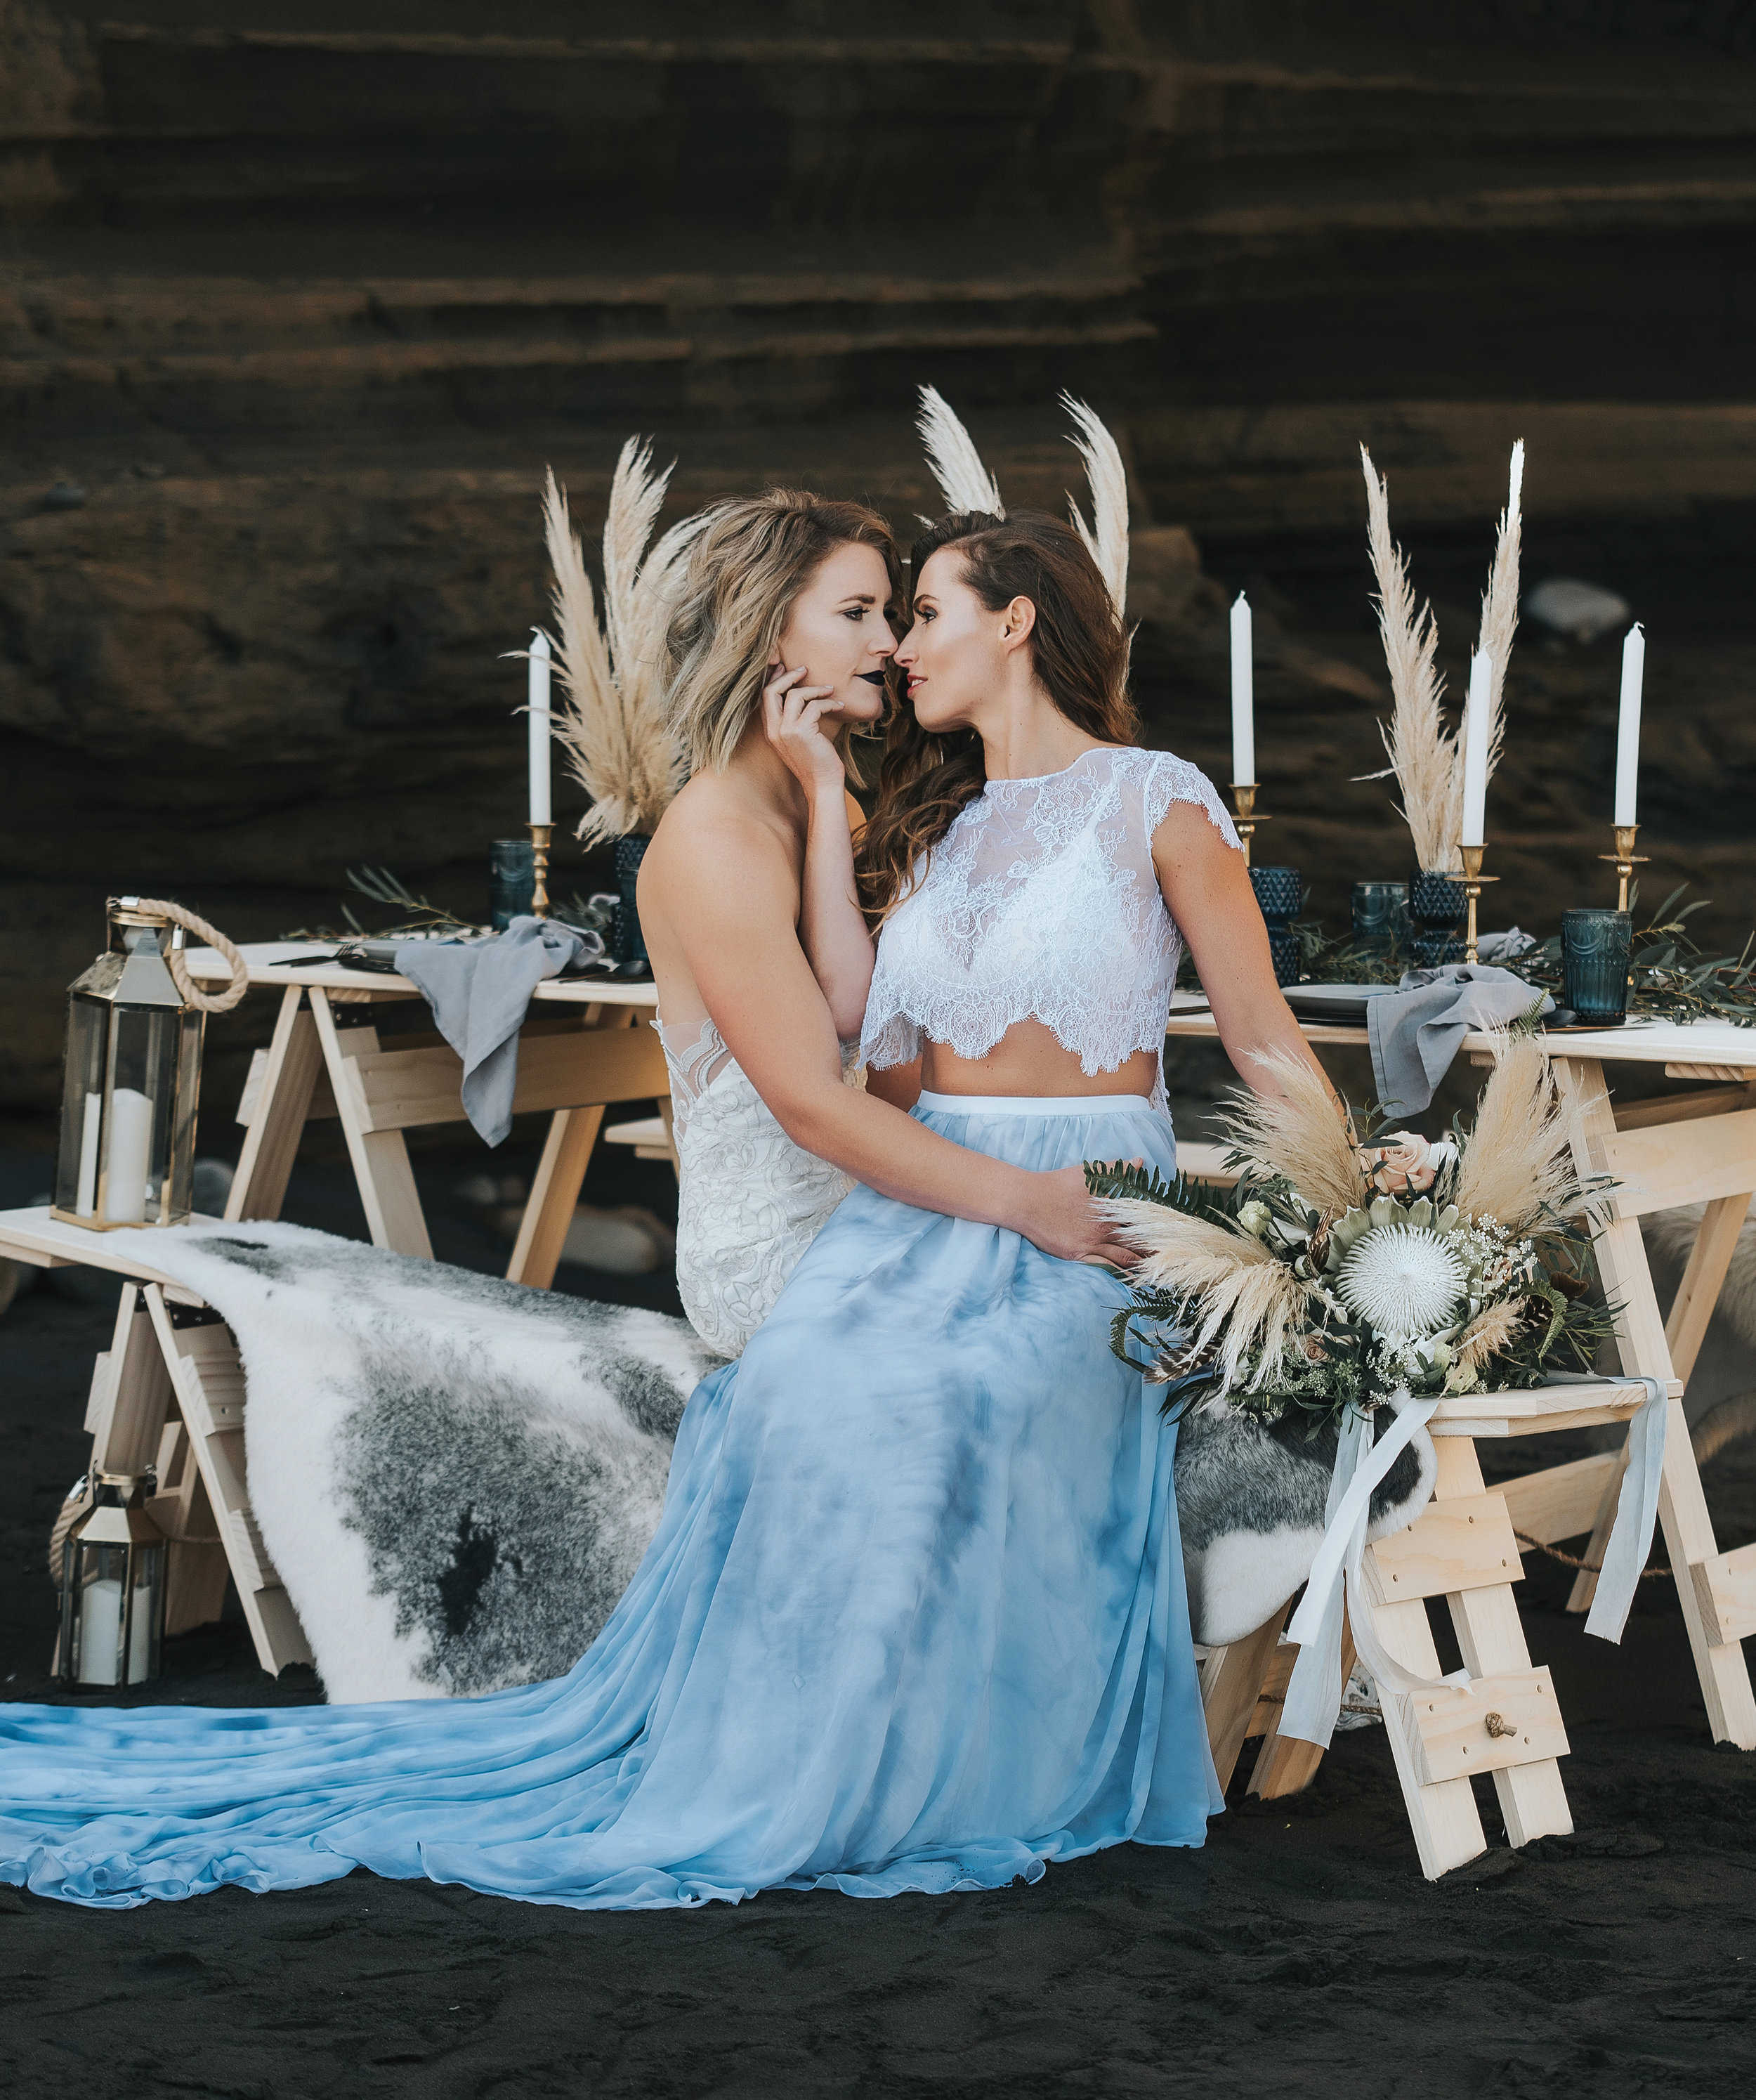 Bride & Groom Mag MOODY BLUE STYLED SHOOT Victoria Jayne 10.jpg